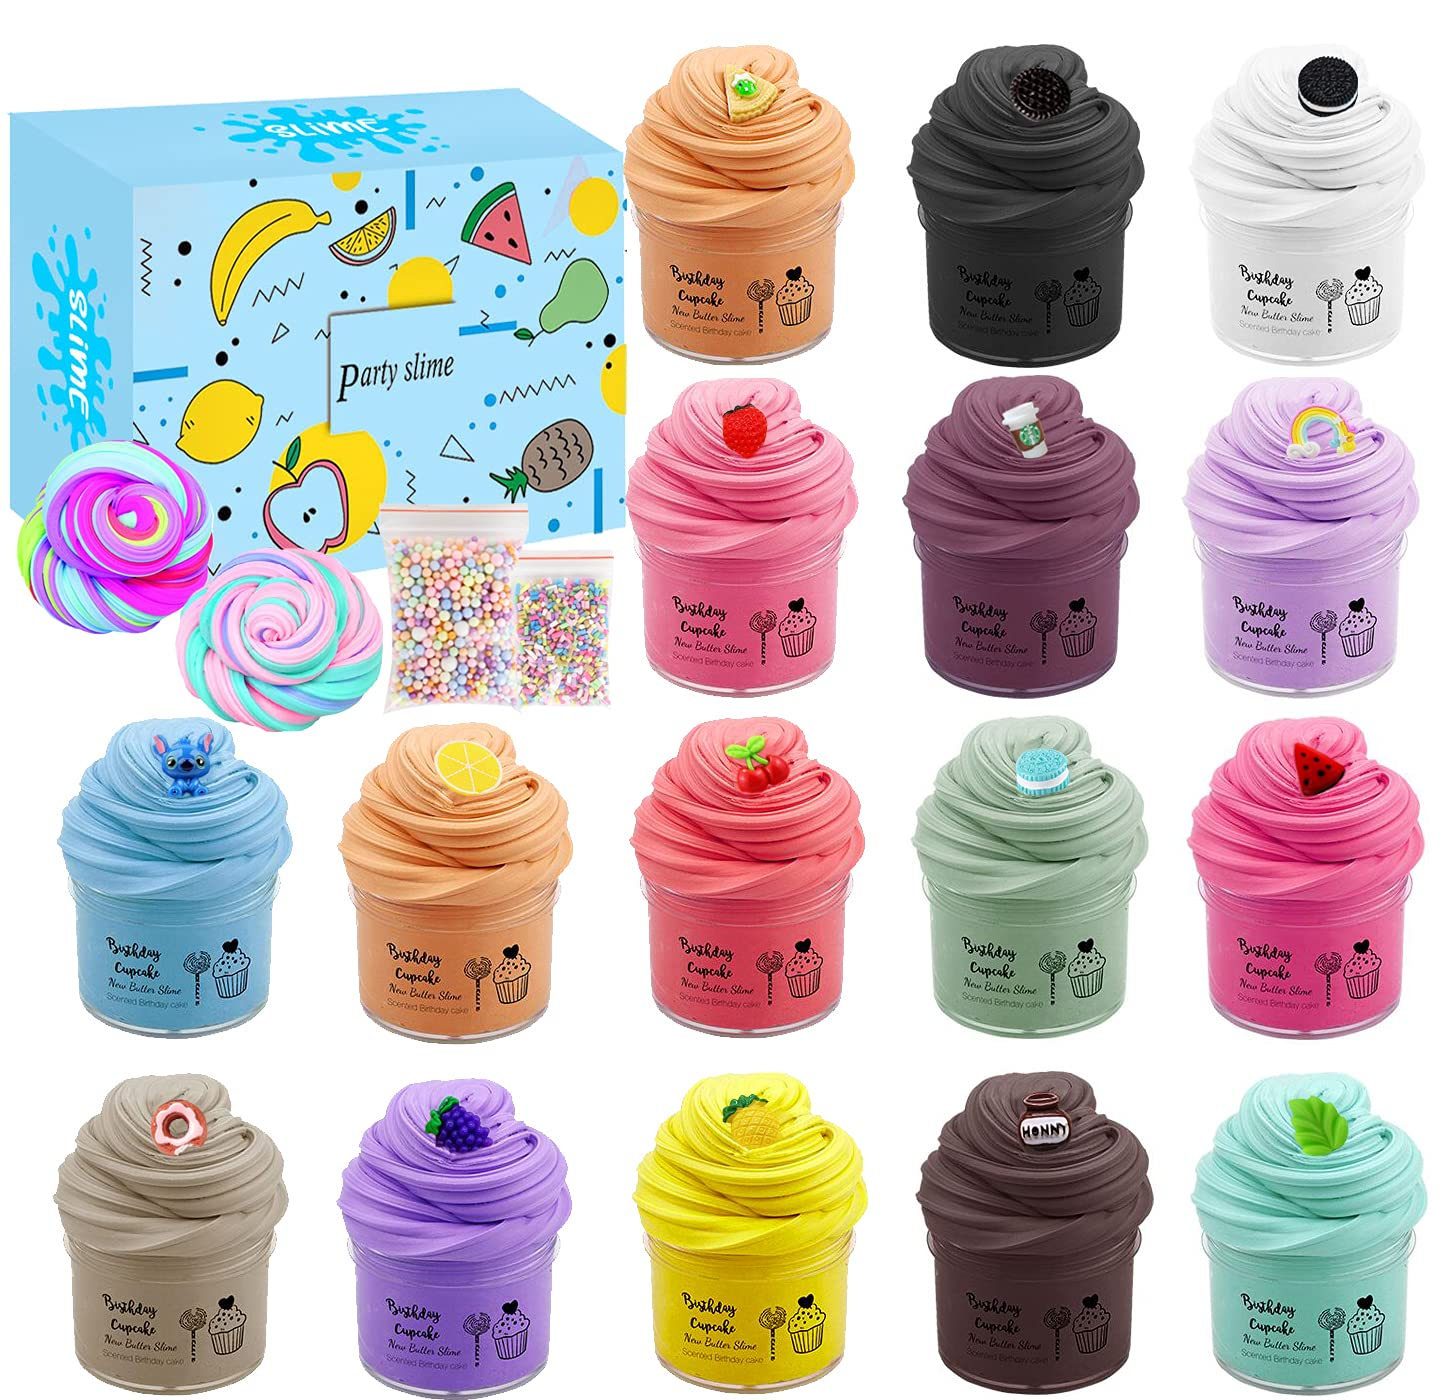 sloueasy 16 Pack Butter Slime Kit, with Mint Slime, Watermelon Slime, Coffee Slime, Lemon Slime, Rainbow Slime and Cake Slime Super Soft & Non-Sticky, Birthday Gifts for Girl and Boys